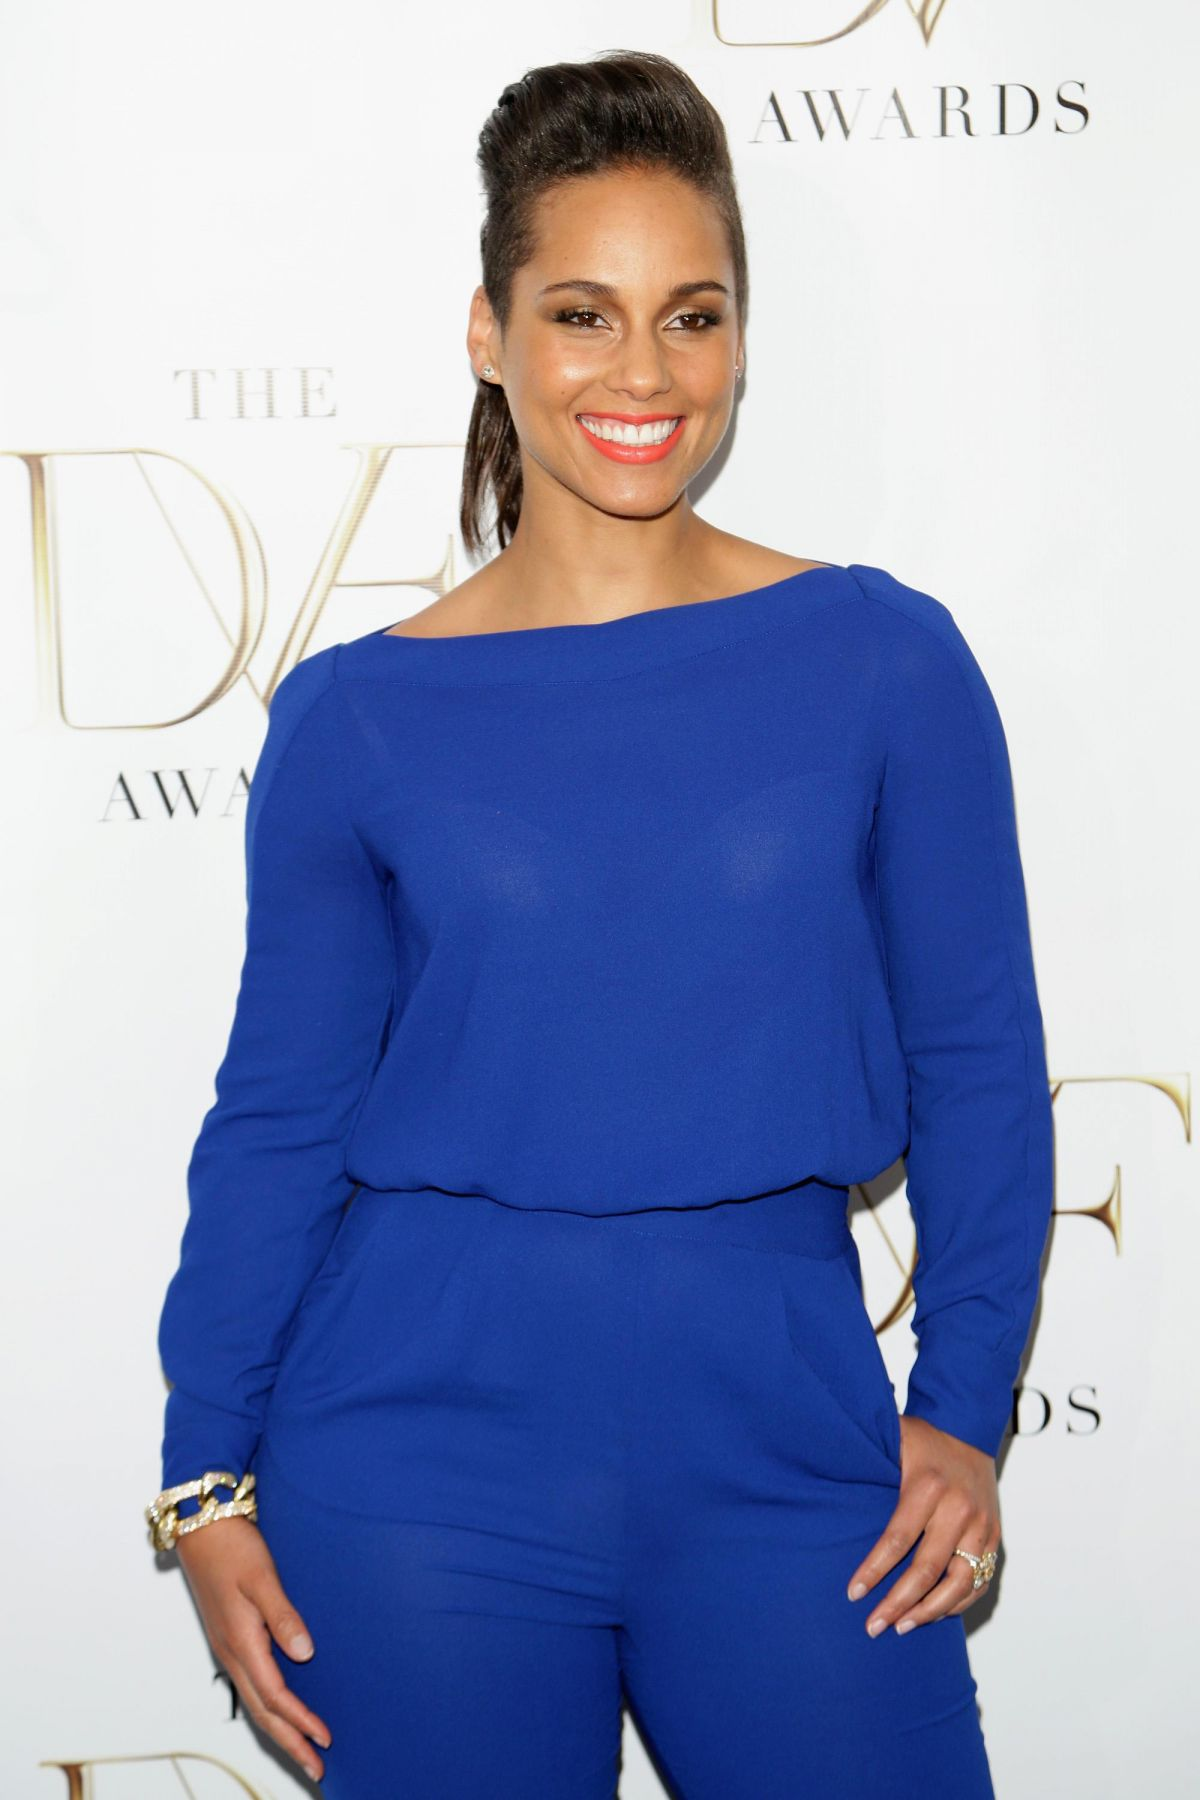 Alicia keys at 2014 dvf awards in new york